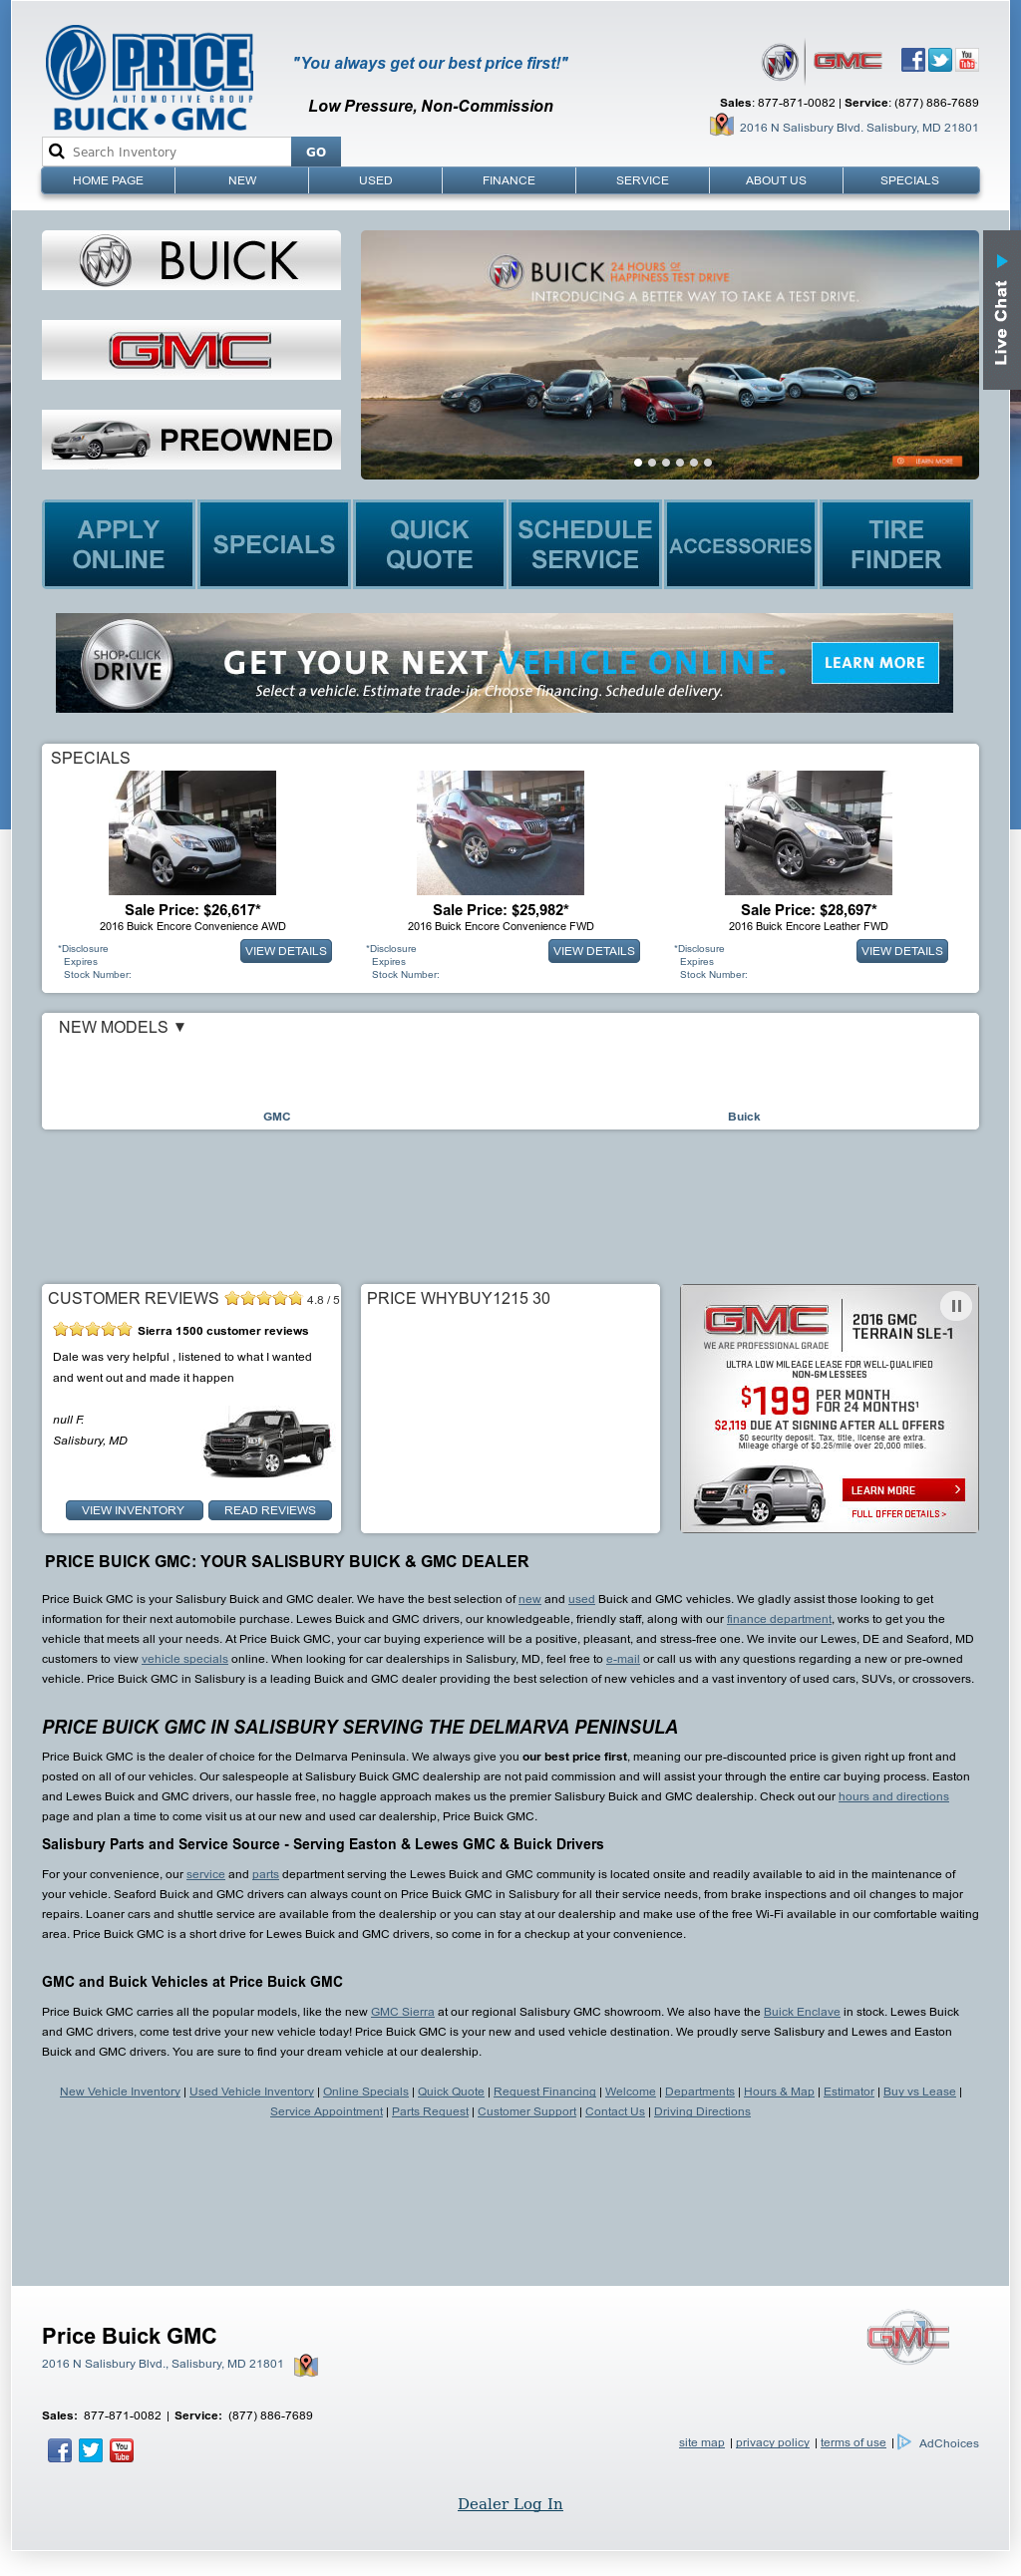 price parts halogen headlight sale oem buick used side salisbury md driver verano for left